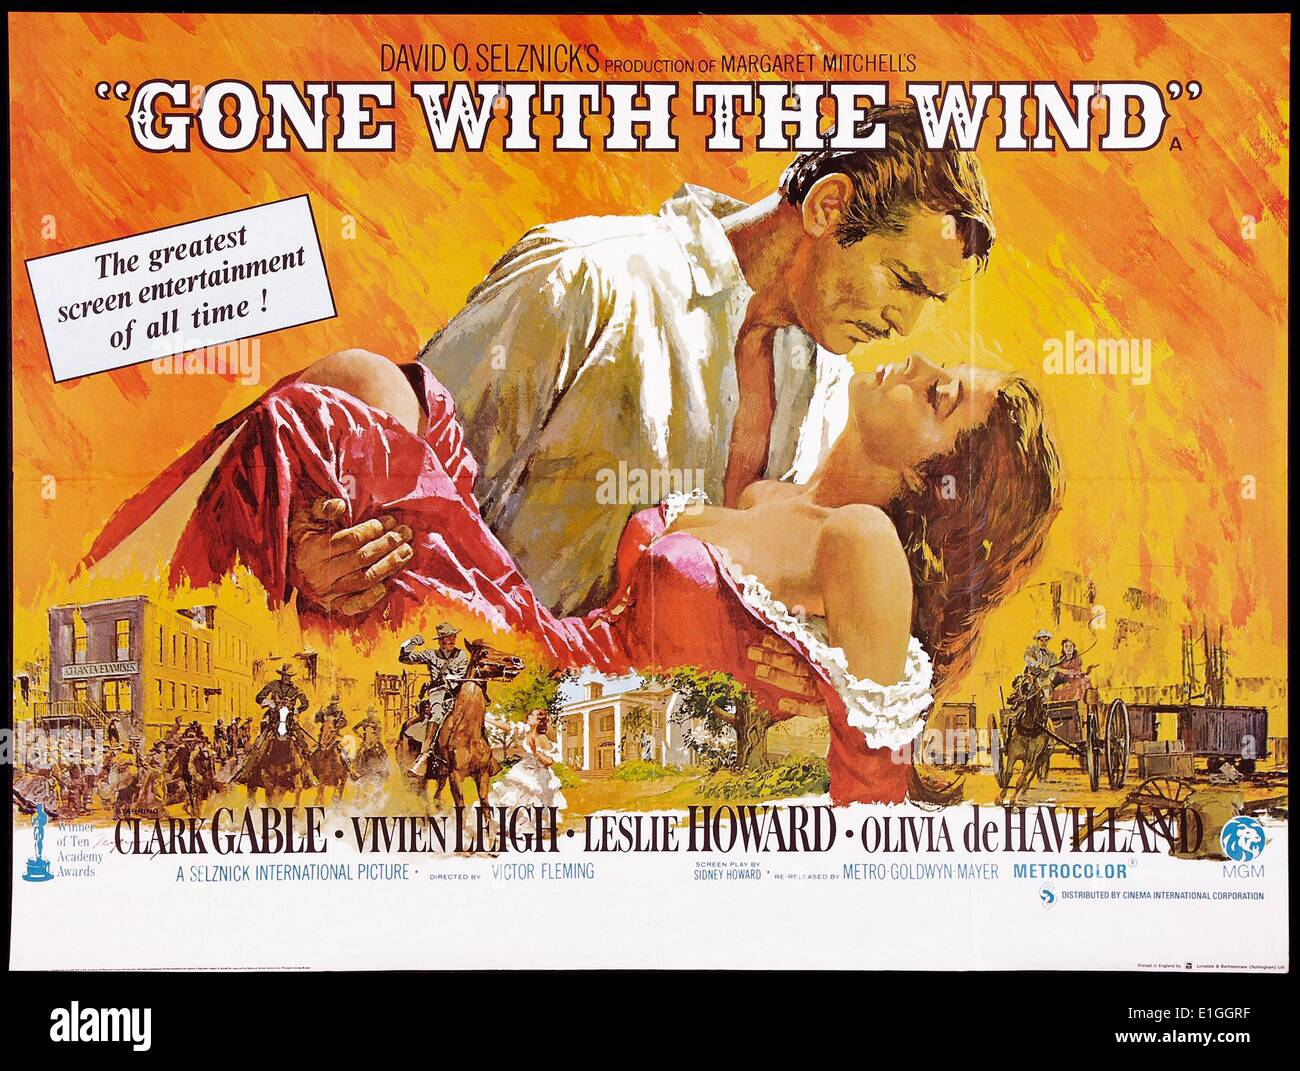 'Gone with the Wind' a 1939 American epic historic romance film adapted from Margaret Mitchelle's Pulitzer-winning novel - Stock Image